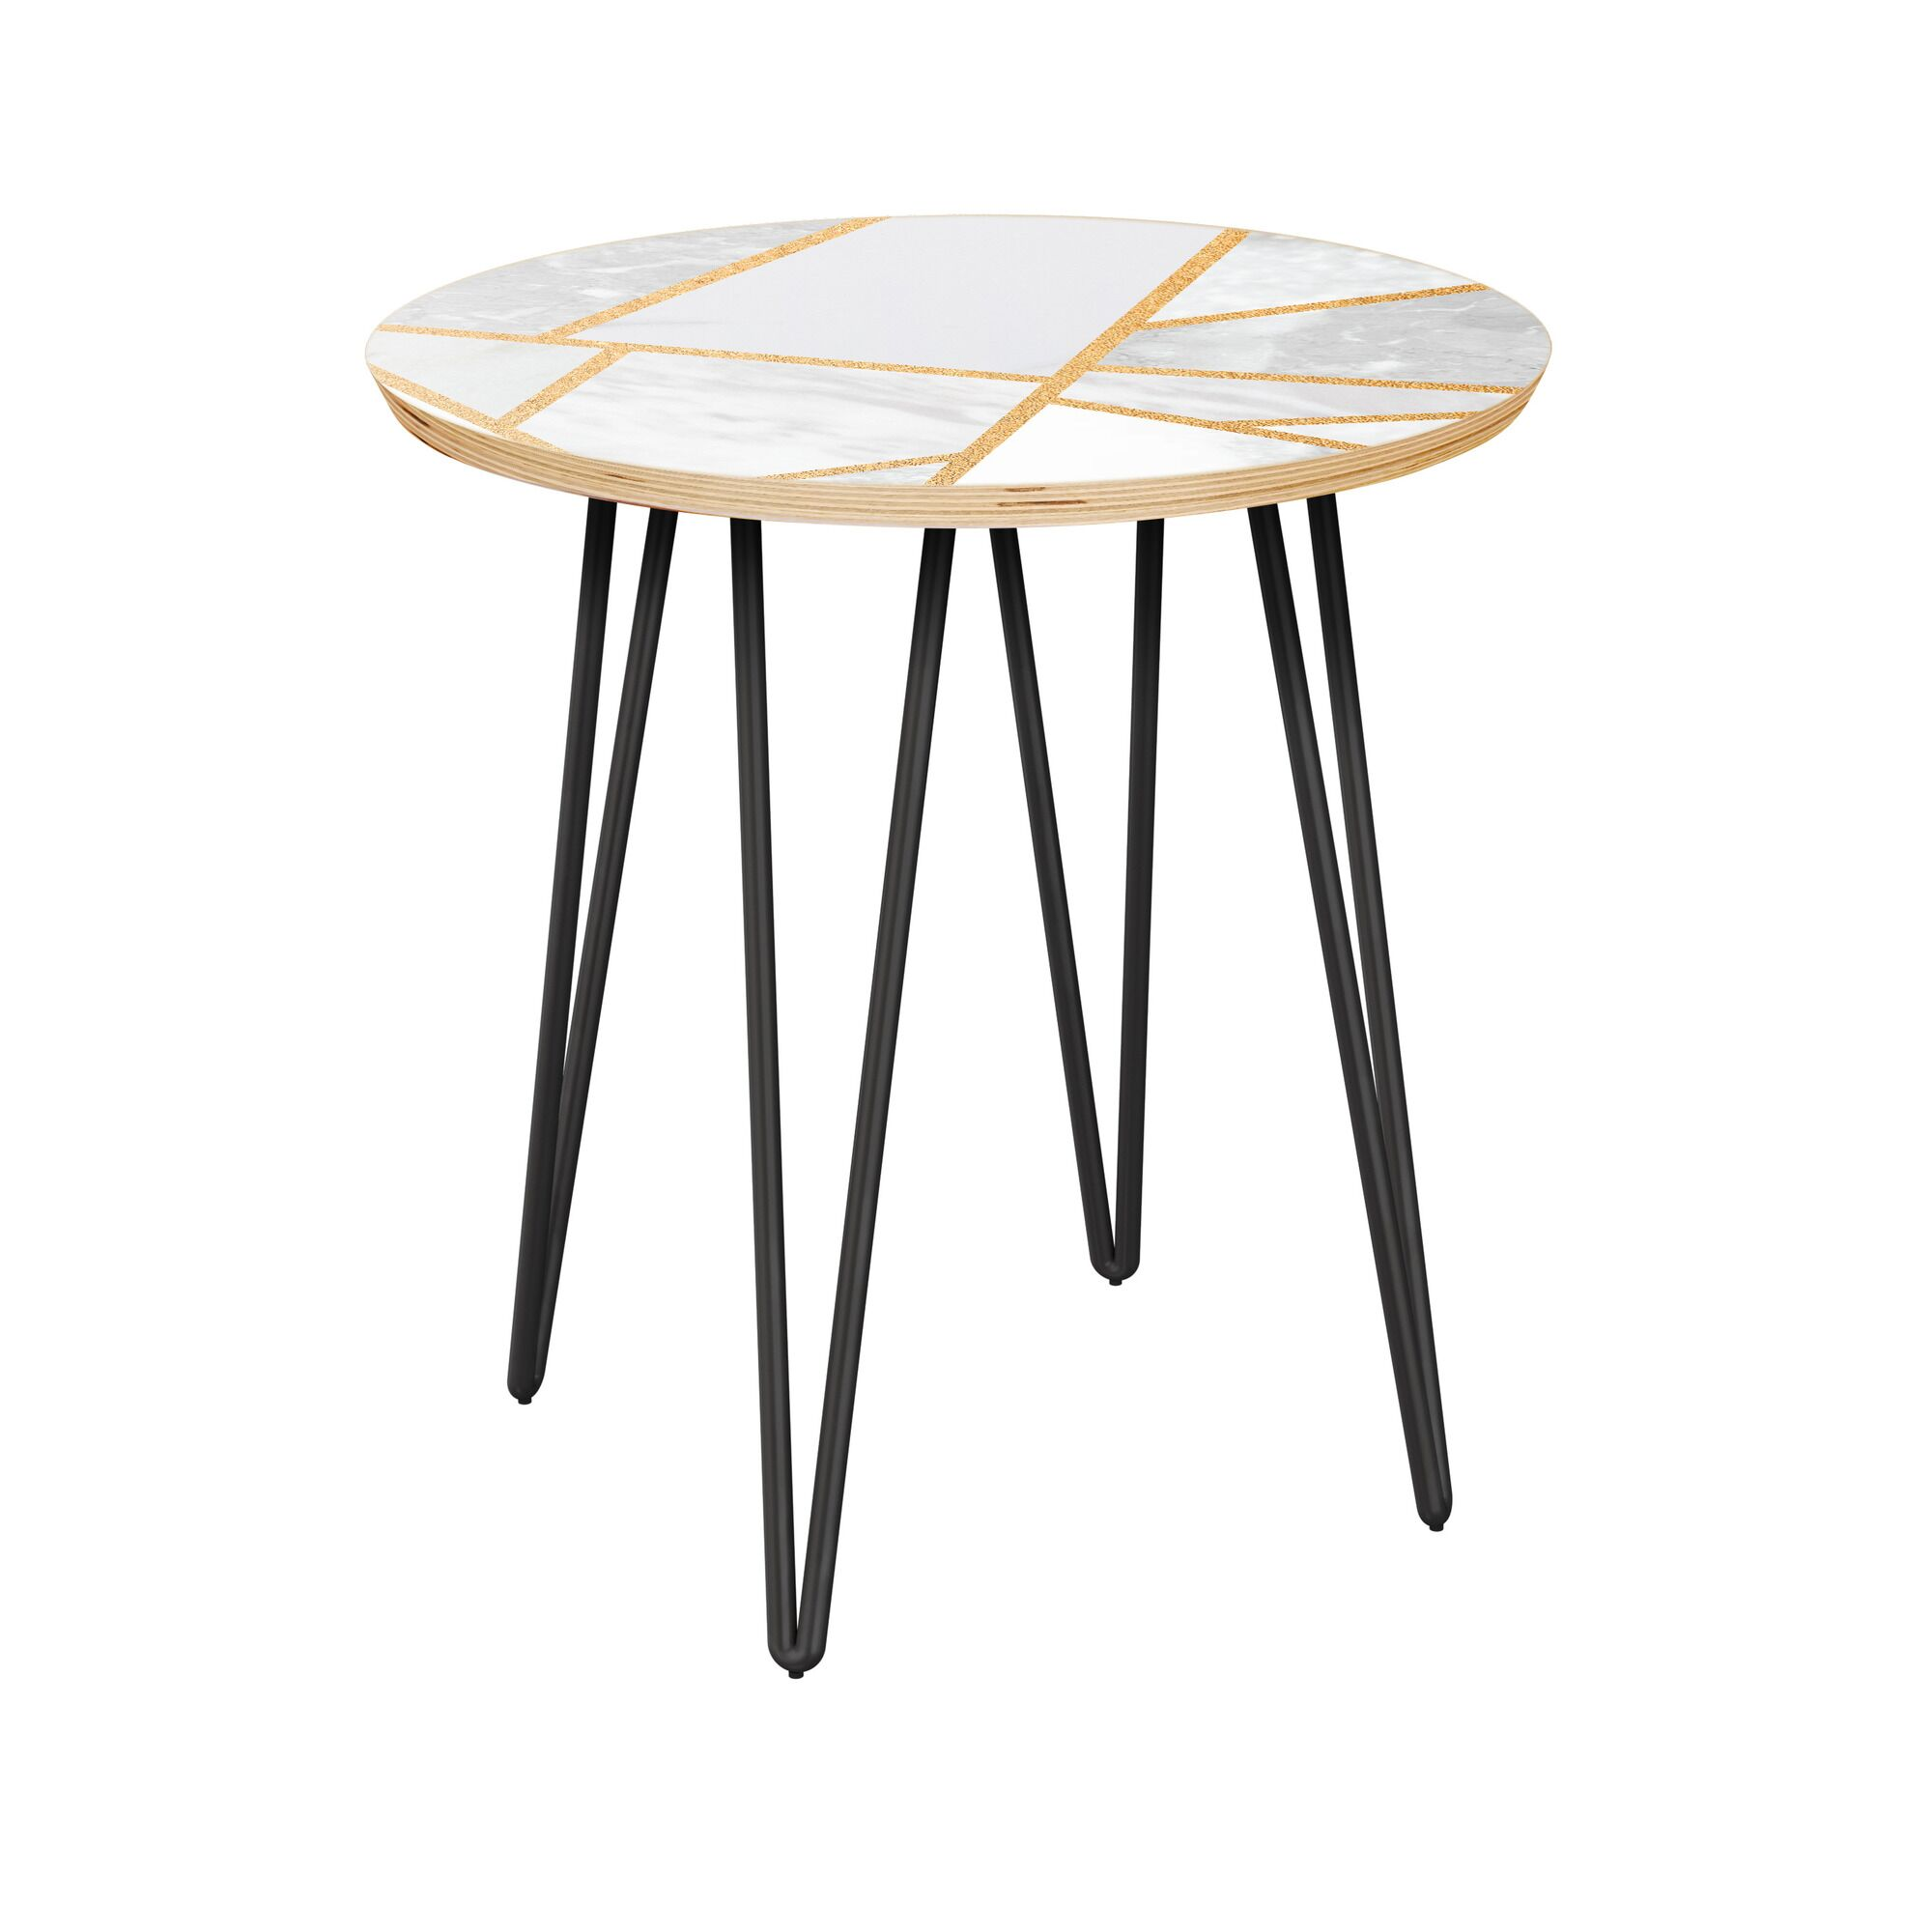 Rowe End Table Table Base Color: Black, Table Top Color: Natural/White